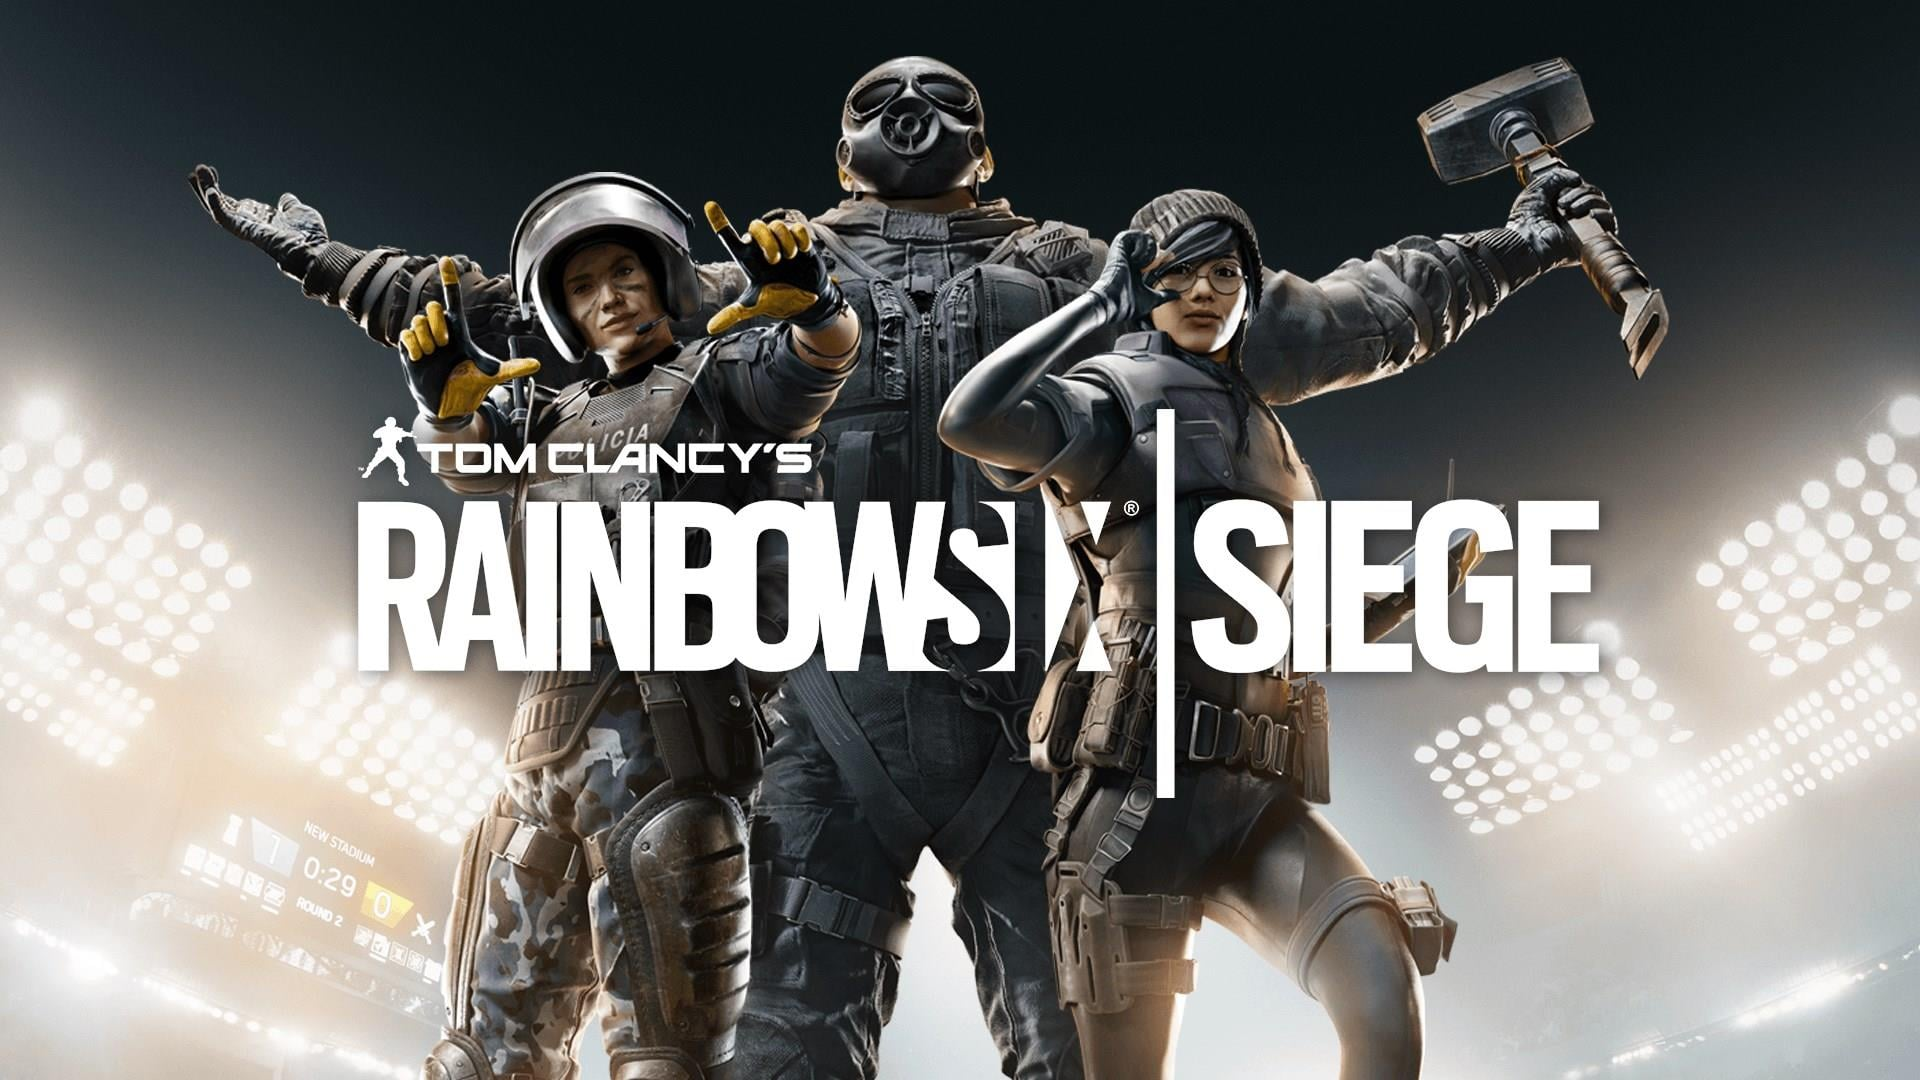 Rainbow Six Siege Coming to Next Gen Consoles